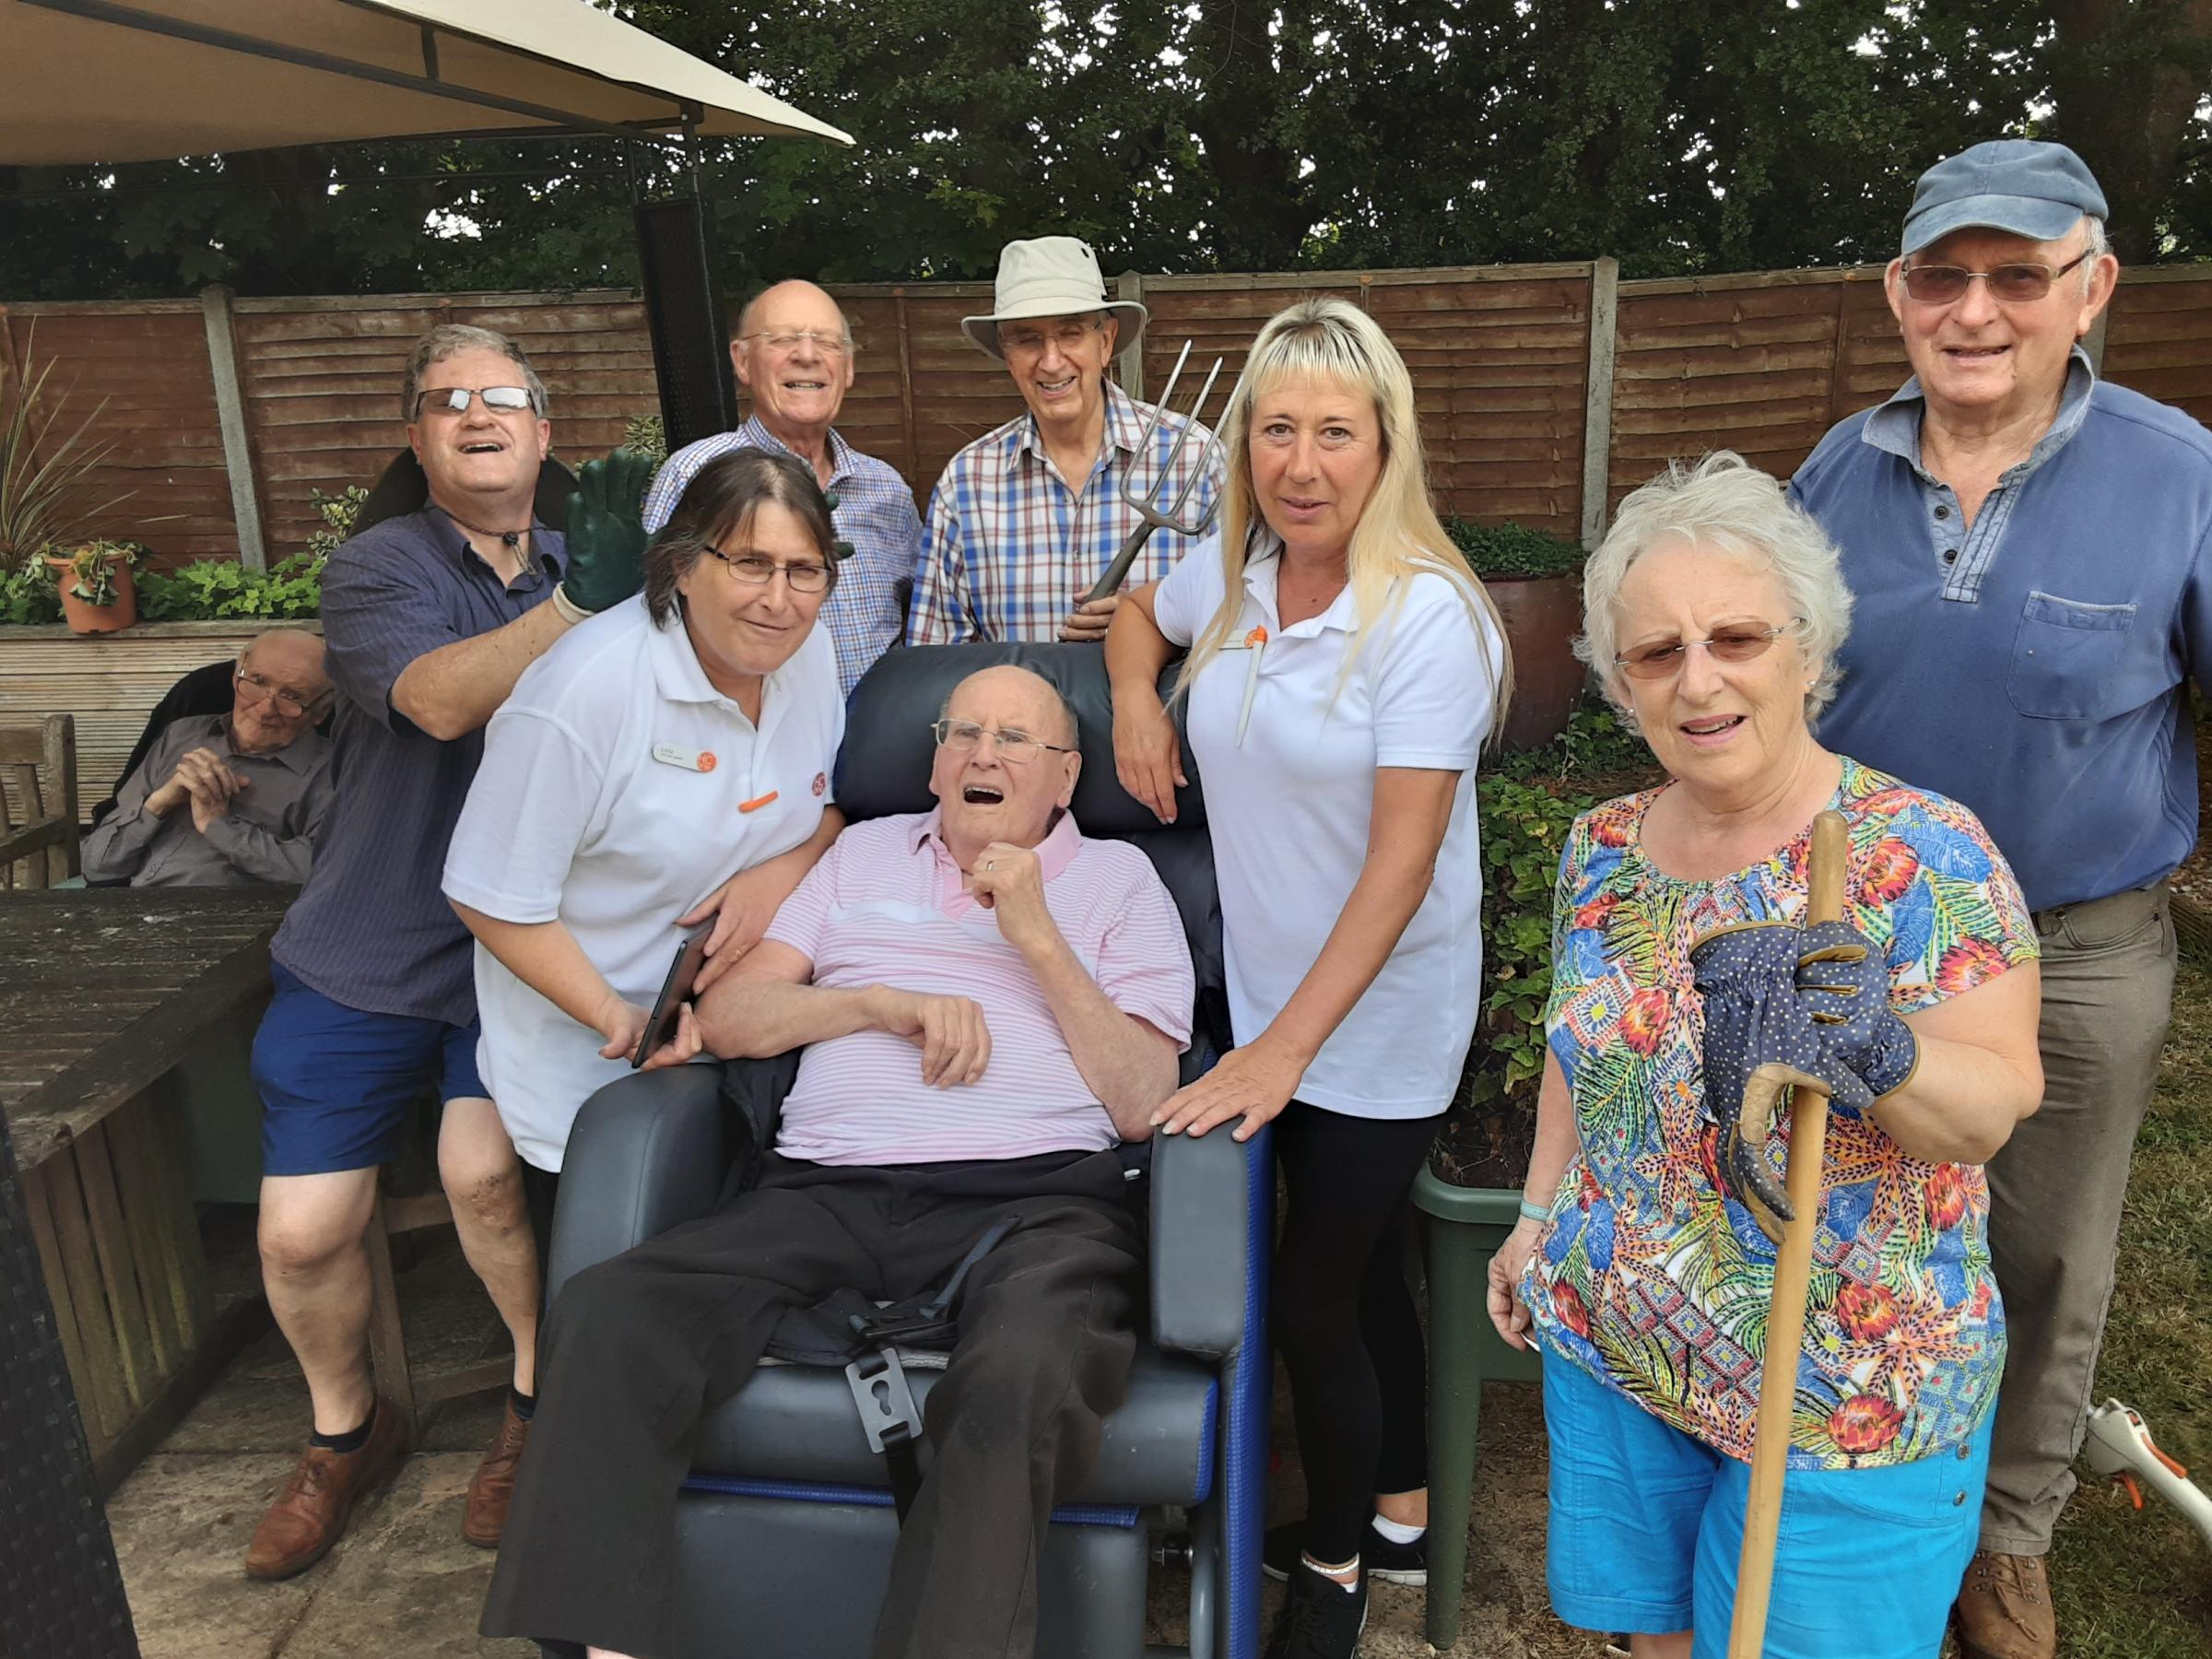 Chippenham Rotary Club spend the day working on care home's garden